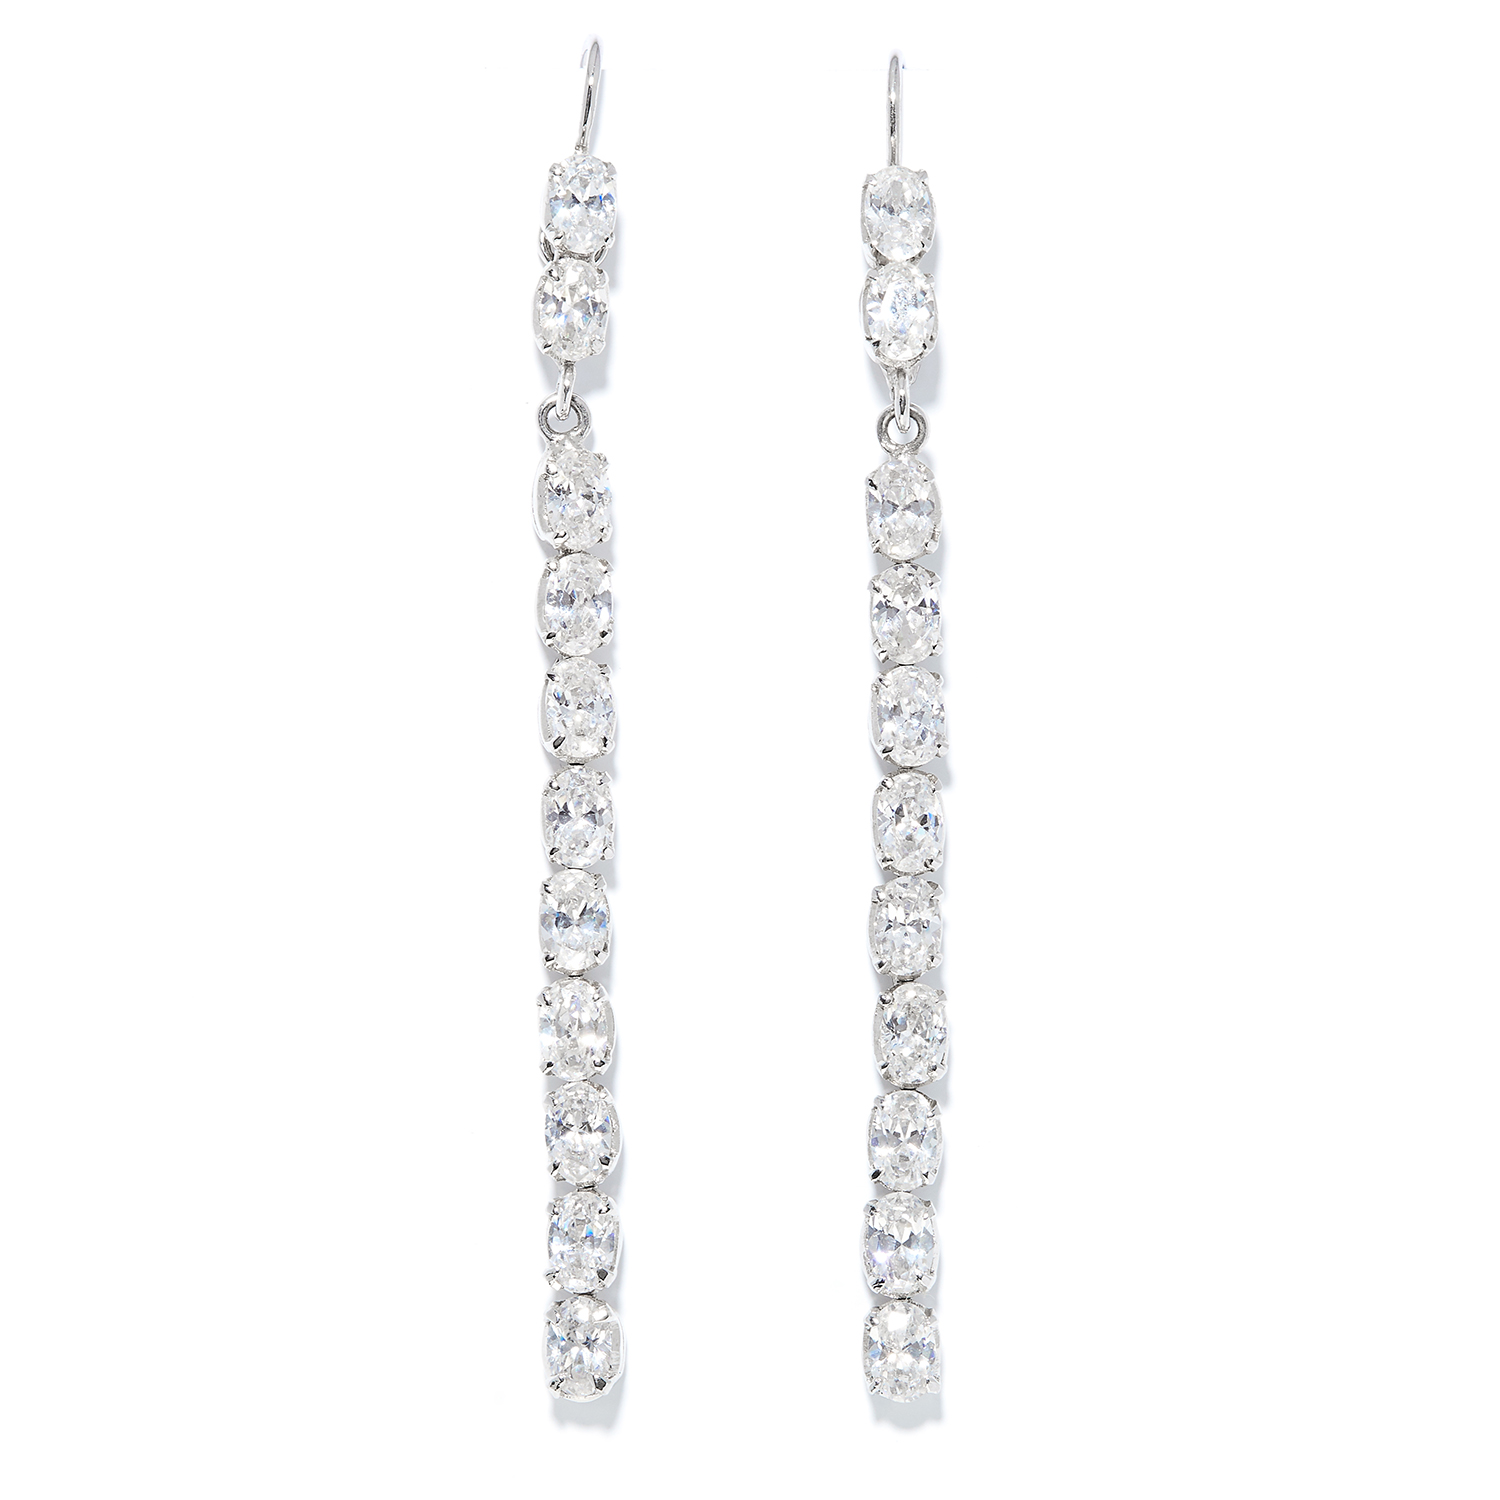 A PAIR OF WHITE STONE EARRINGS in white metal, each comprising of a line of oval cut white stones,